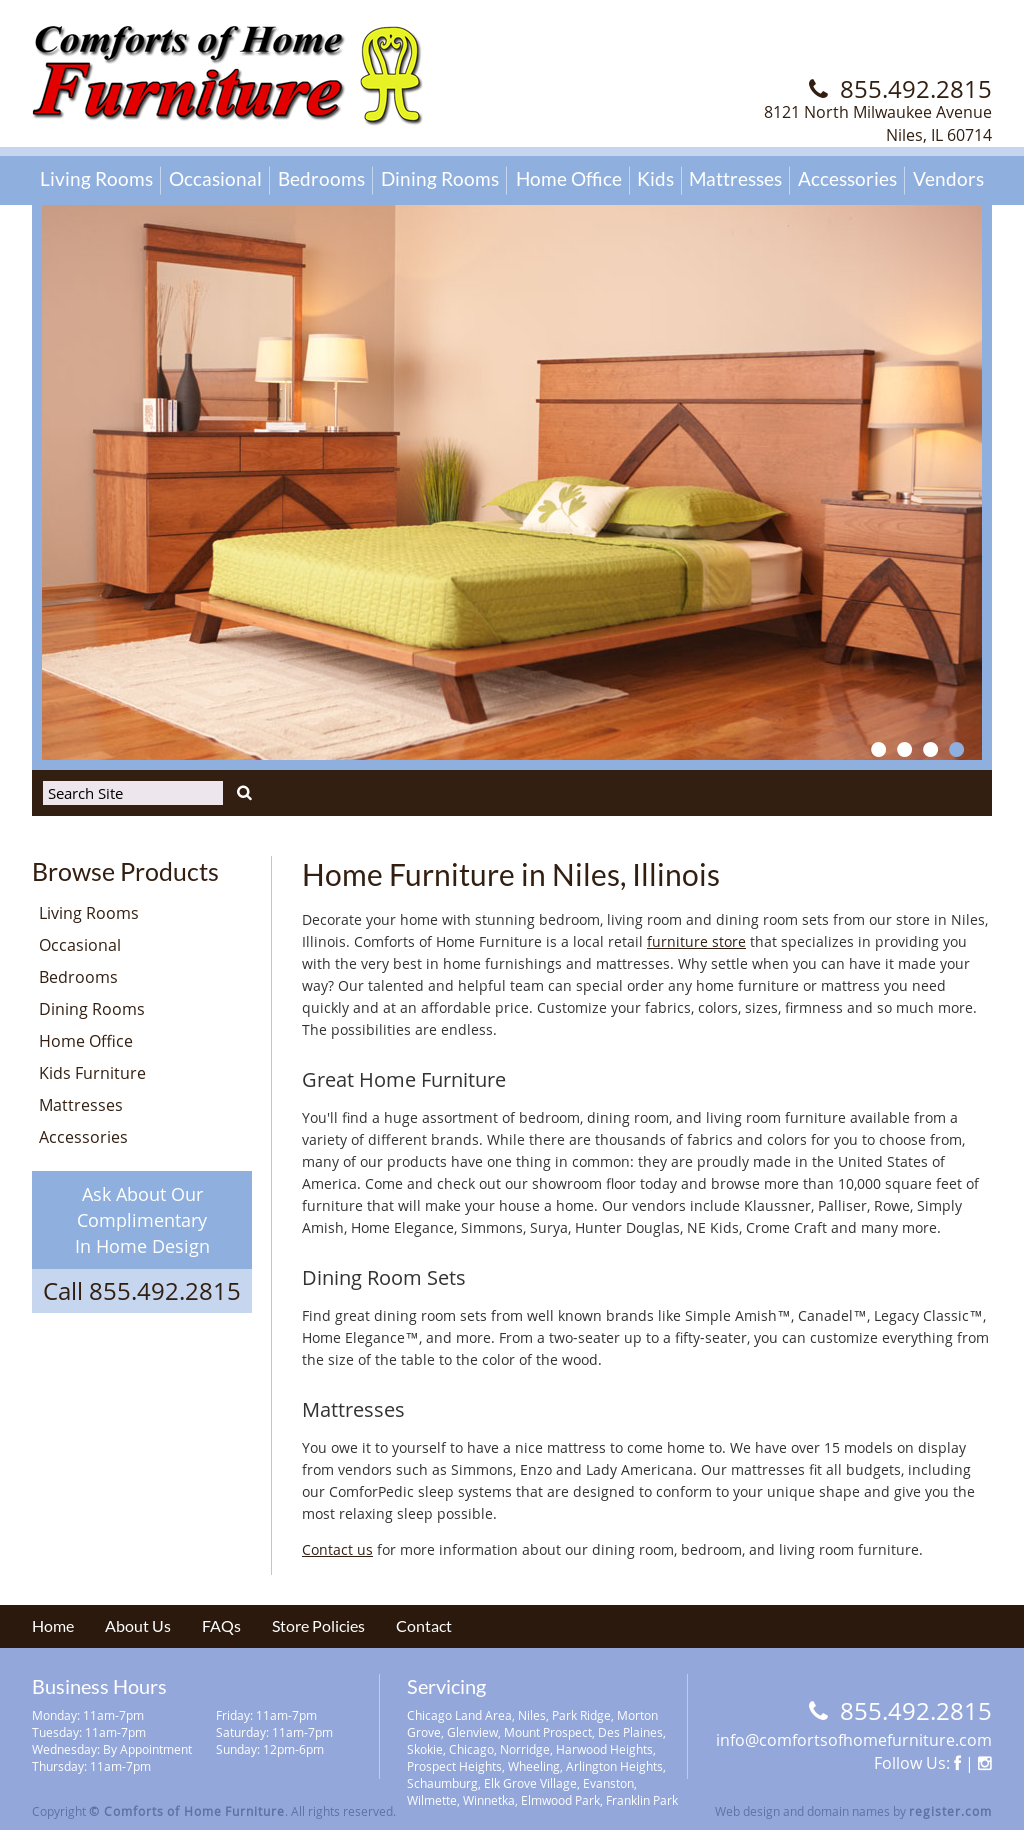 Comforts Of Home Furniture Compeors Revenue And Employees Owler Company Profile